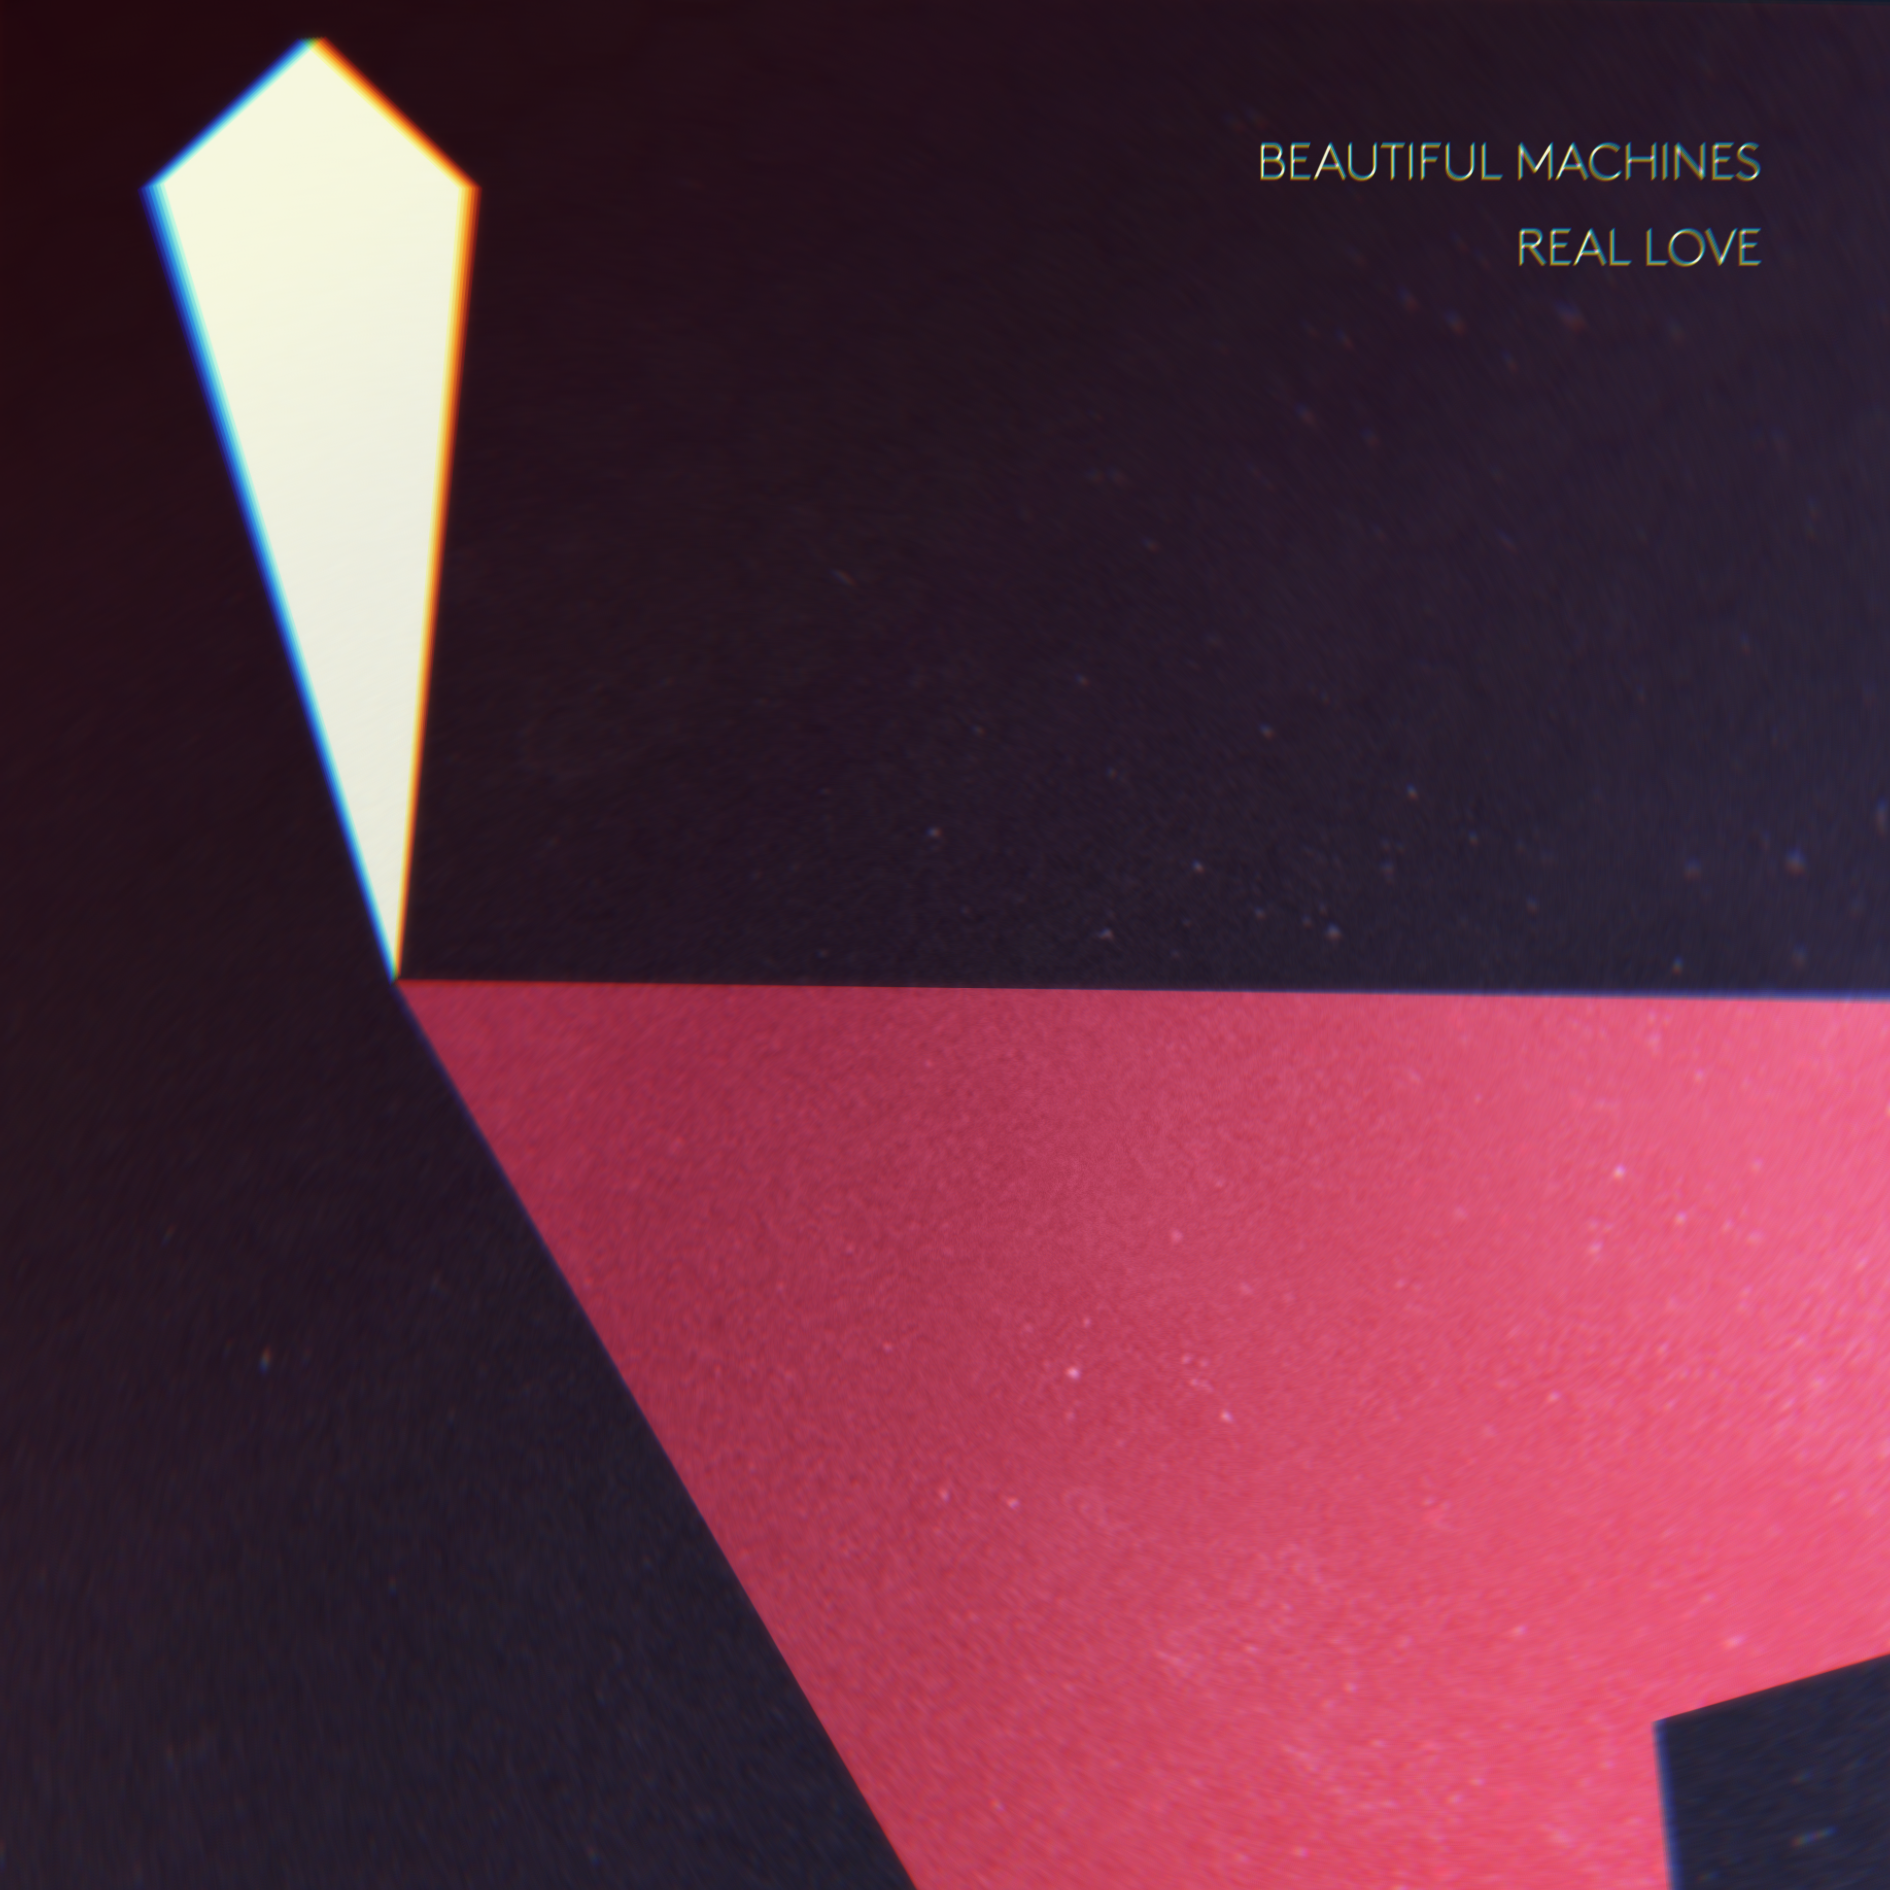 BeautifulMachines_v01_00.png